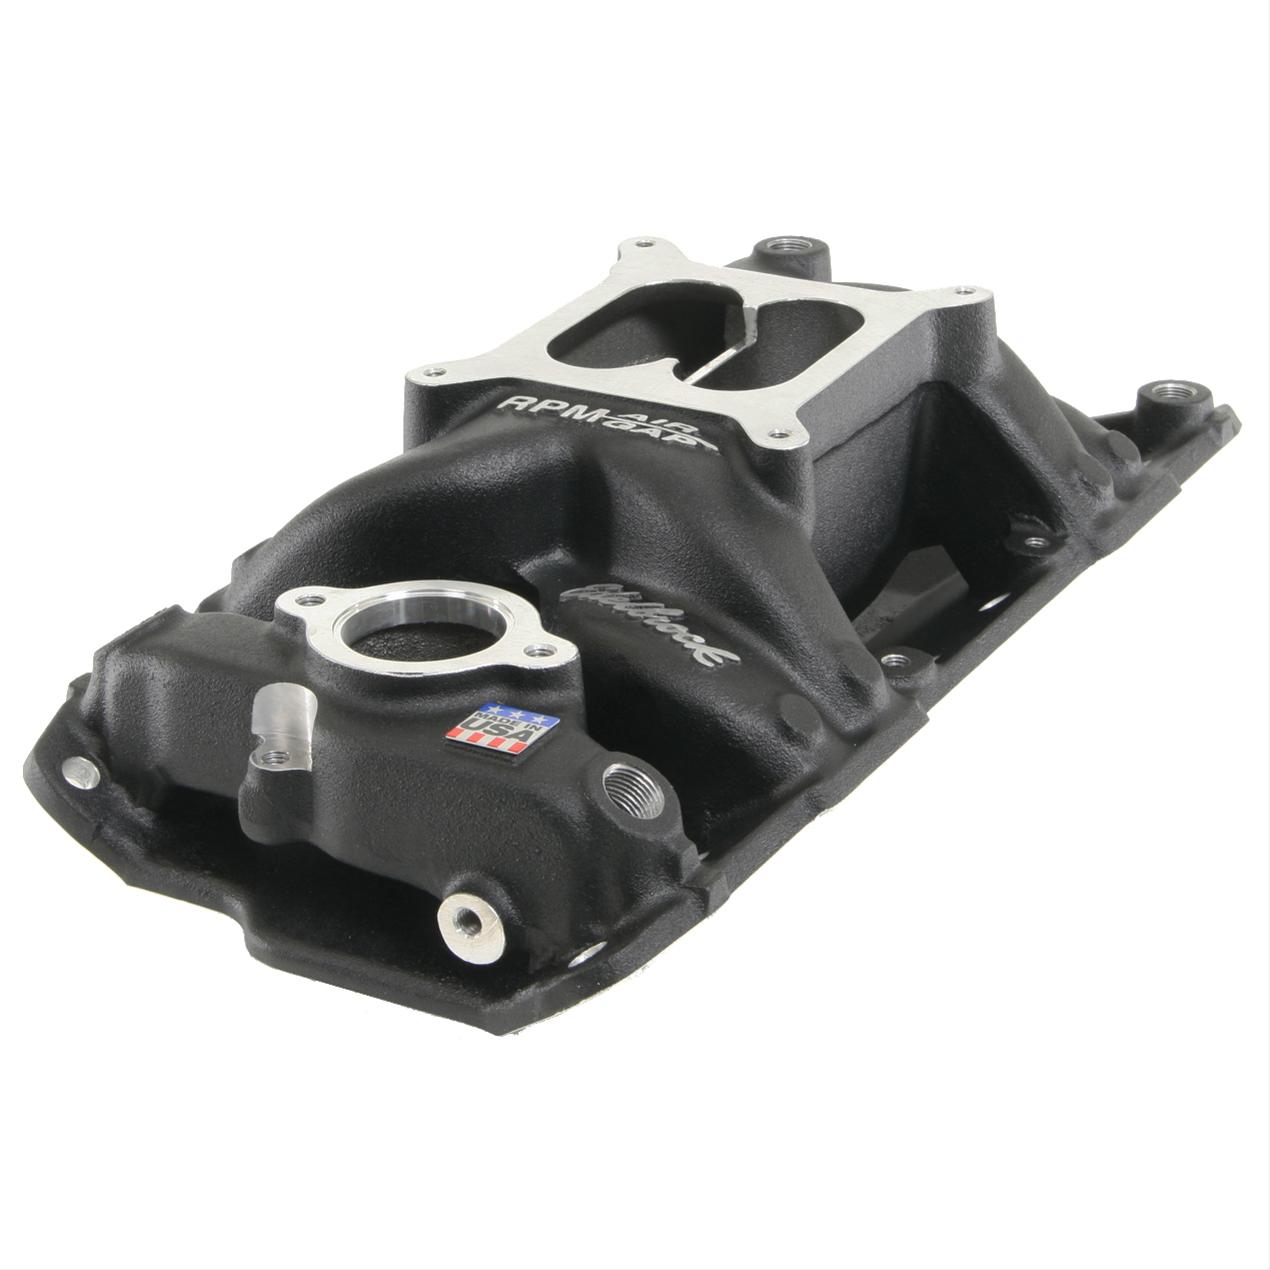 Edelbrock Performer RPM Air-Gap Intake Manifold 75013 Fits